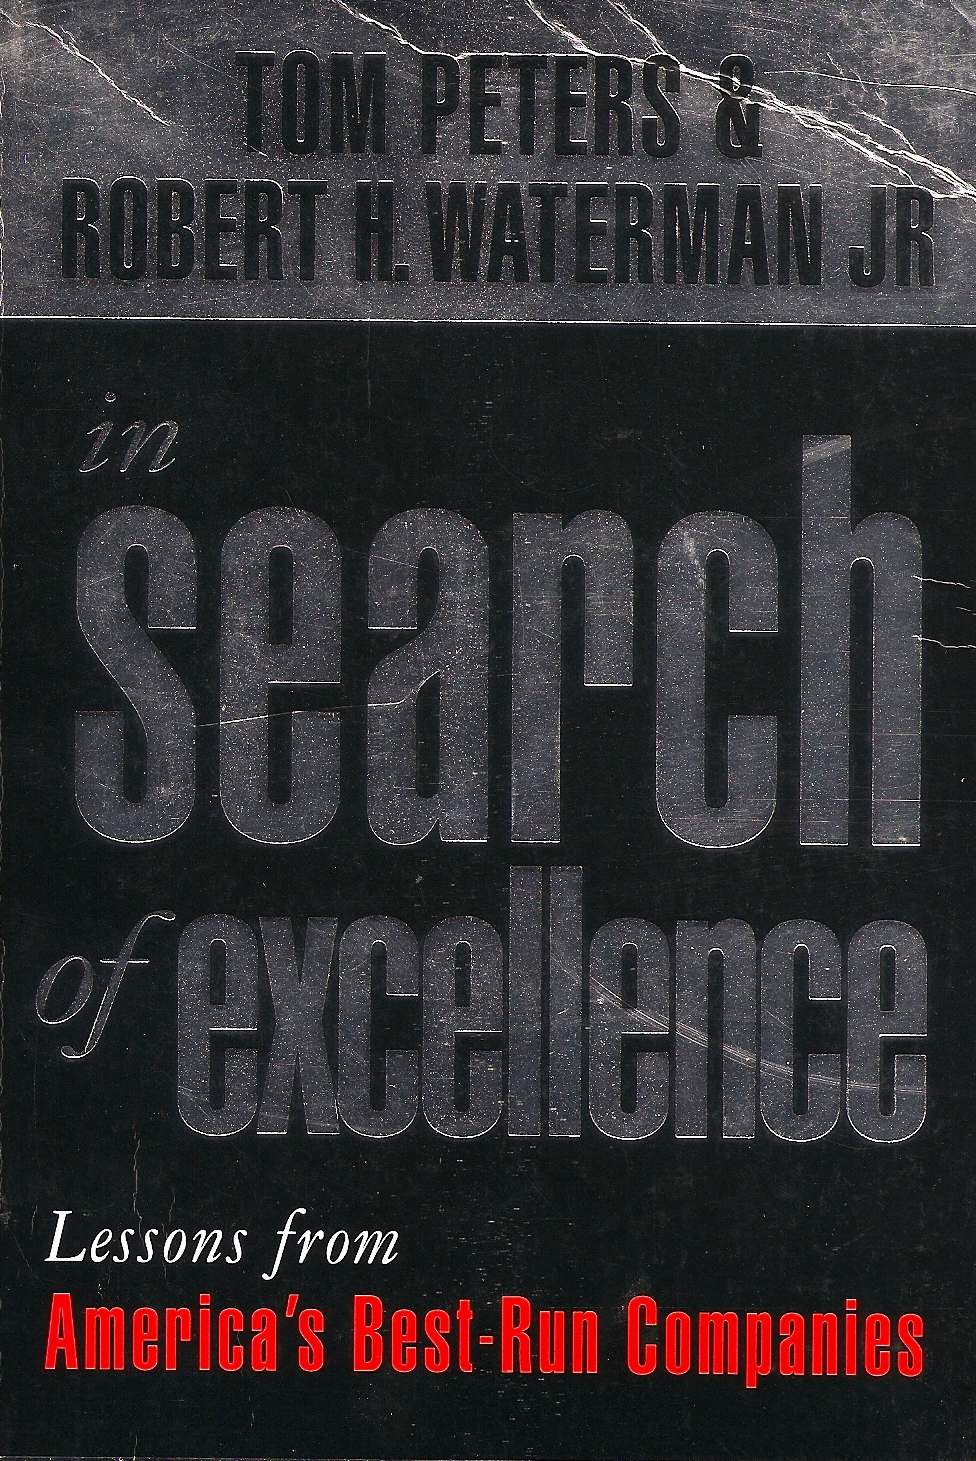 In search of excellence peters waterman greatest hits blog what the book says search publicscrutiny Choice Image